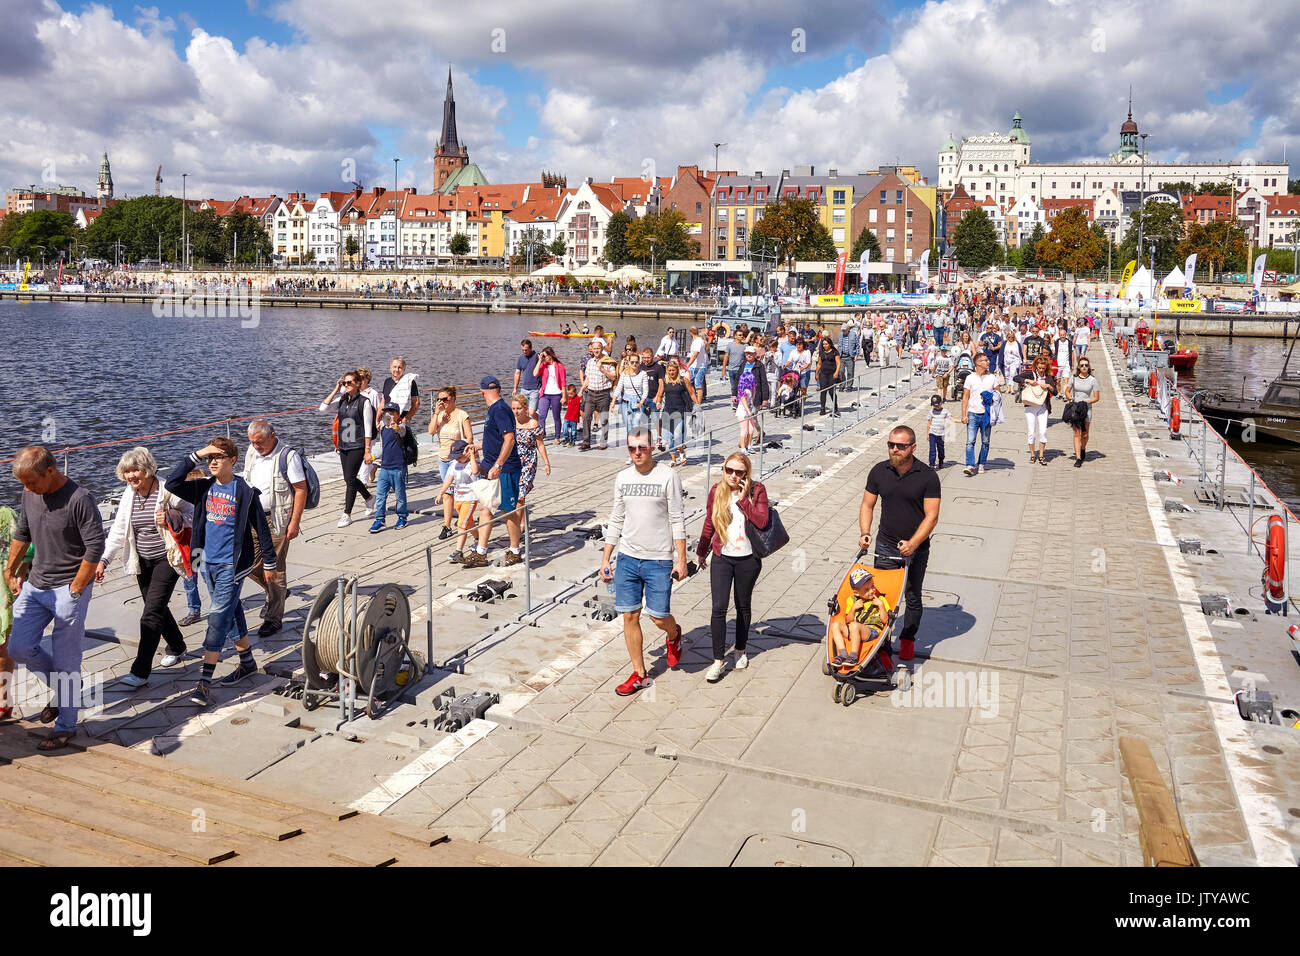 Szczecin, Poland - August 06, 2017: Visitors cross Oder river with military floating bridge during final of The Tall Ships Races 2017. - Stock Image